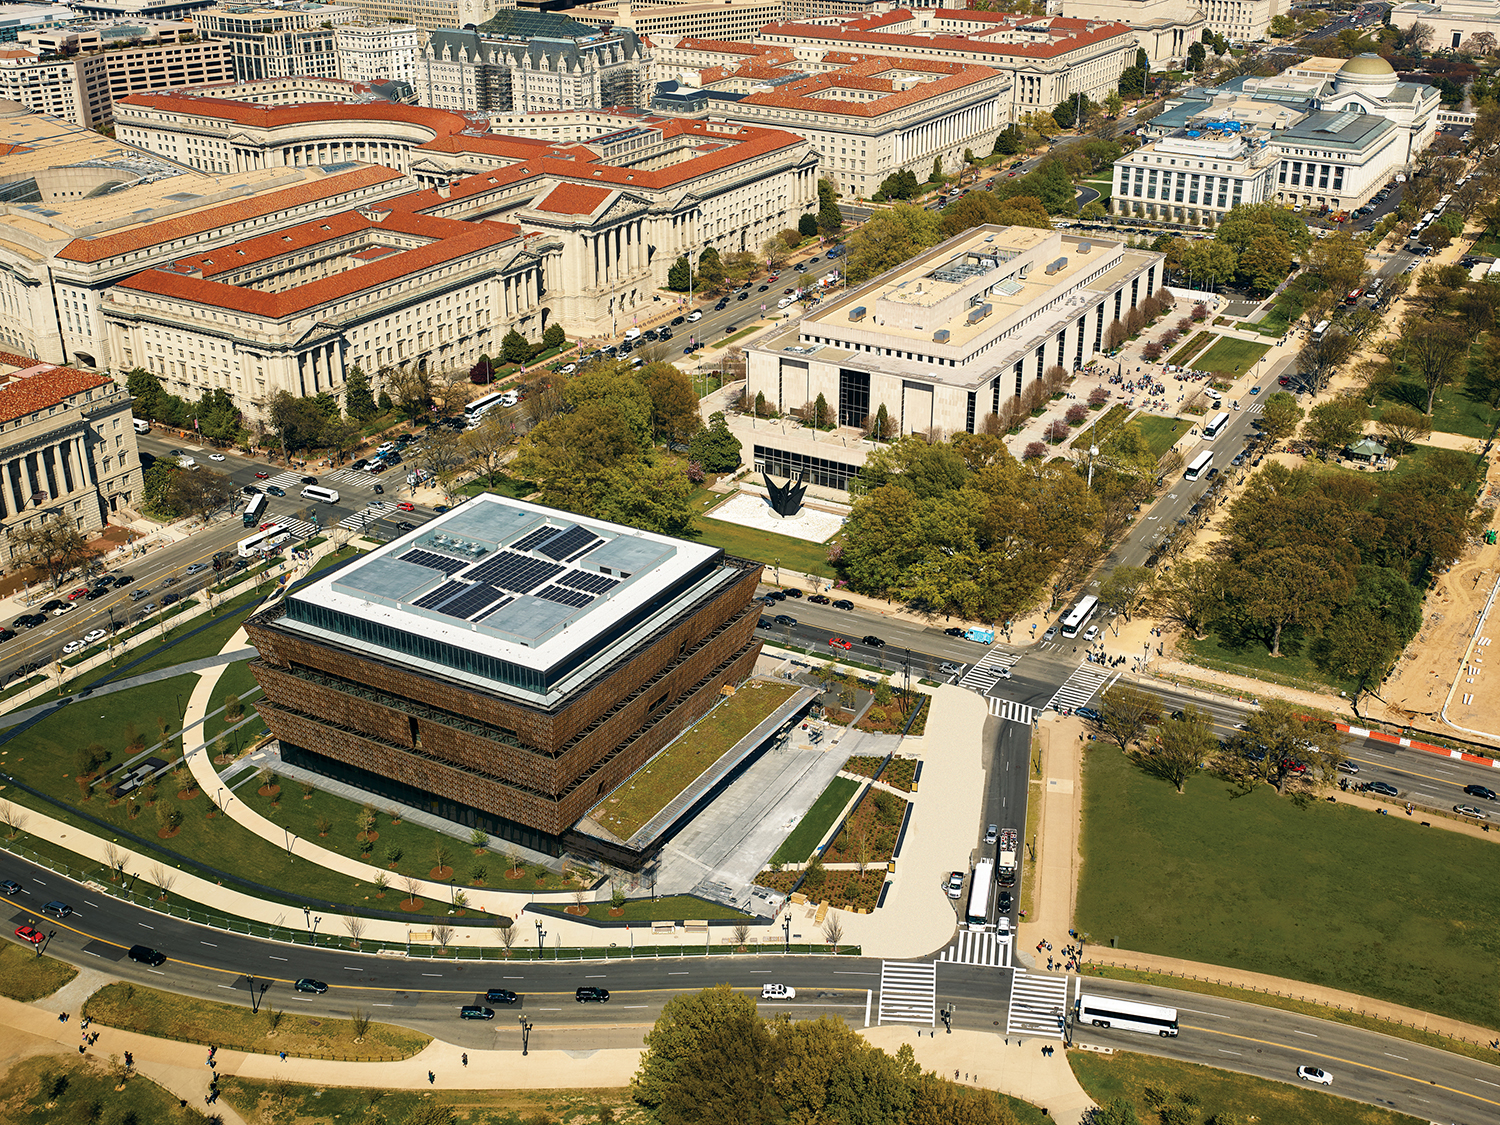 Smithsonian Institution, National Museum of African American History and Culture Architectural Photrography (Alan Karchmer/NMAAHC)